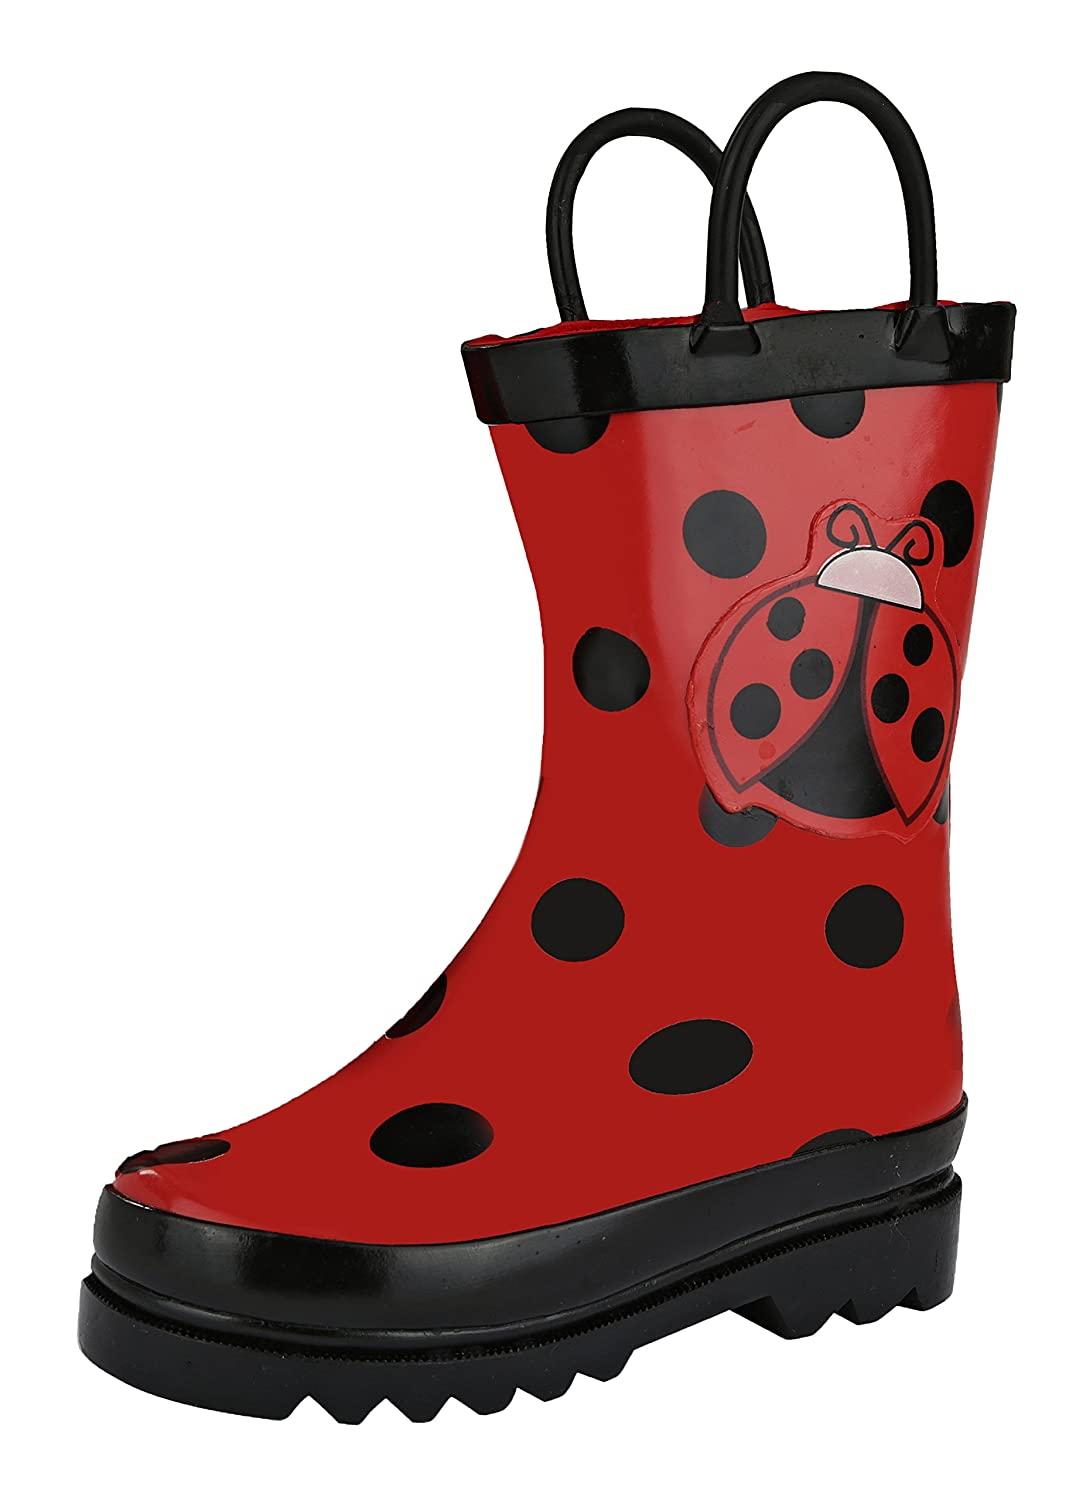 Puddle Play Kids Girls' Ladybug Printed Waterproof Easy-On Rubber Rain Boots (Toddler/Little Kids)